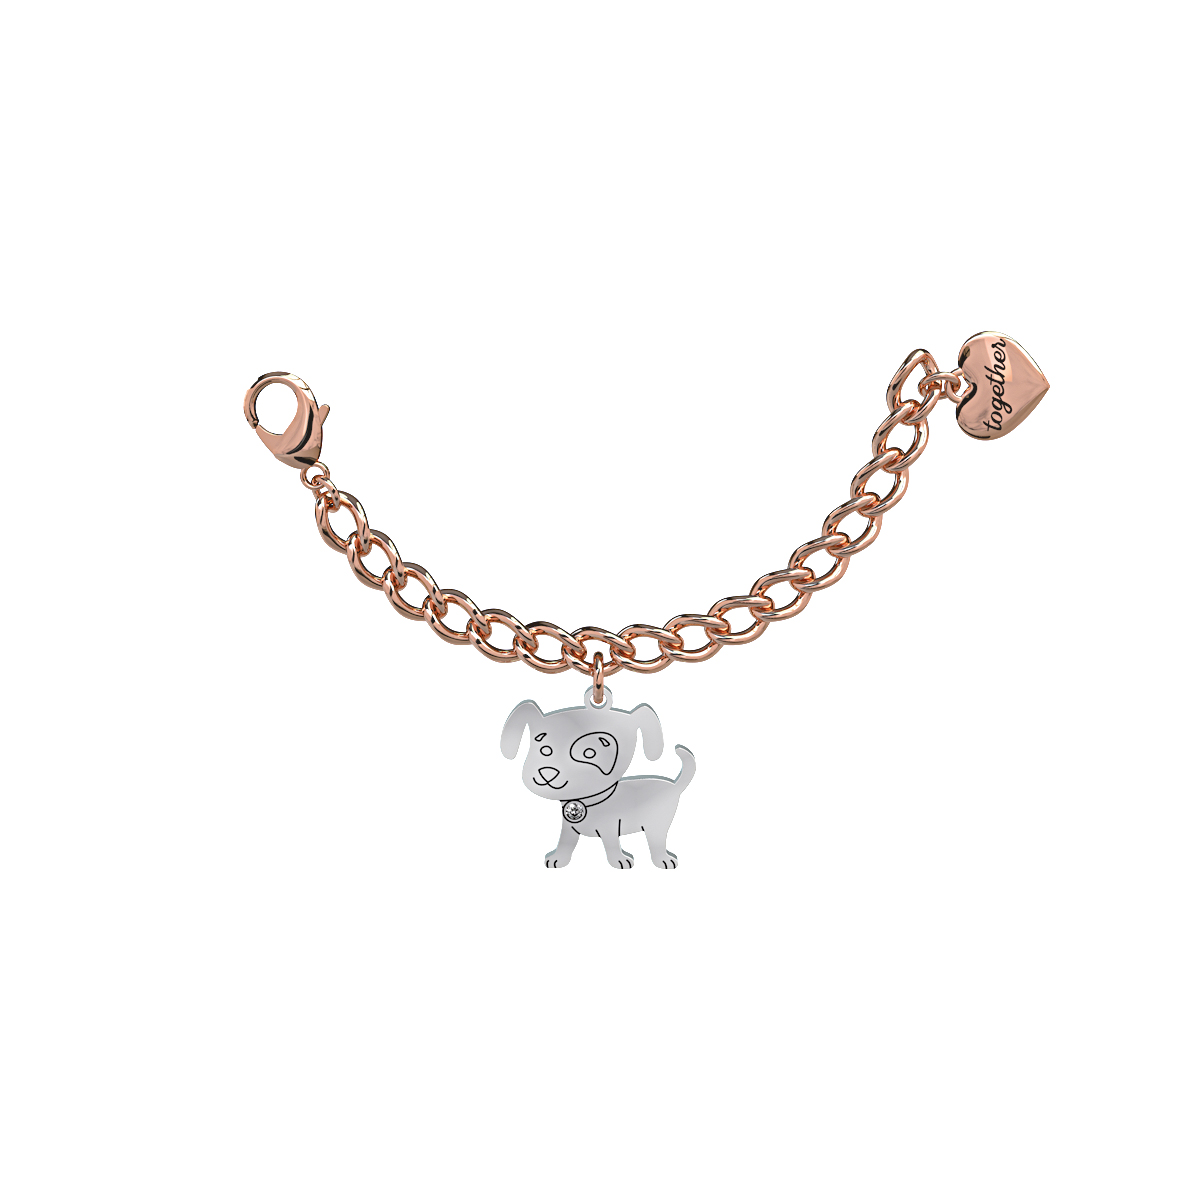 Elemento Single Bracciale 2jewels donna Together componibile Cane 131010